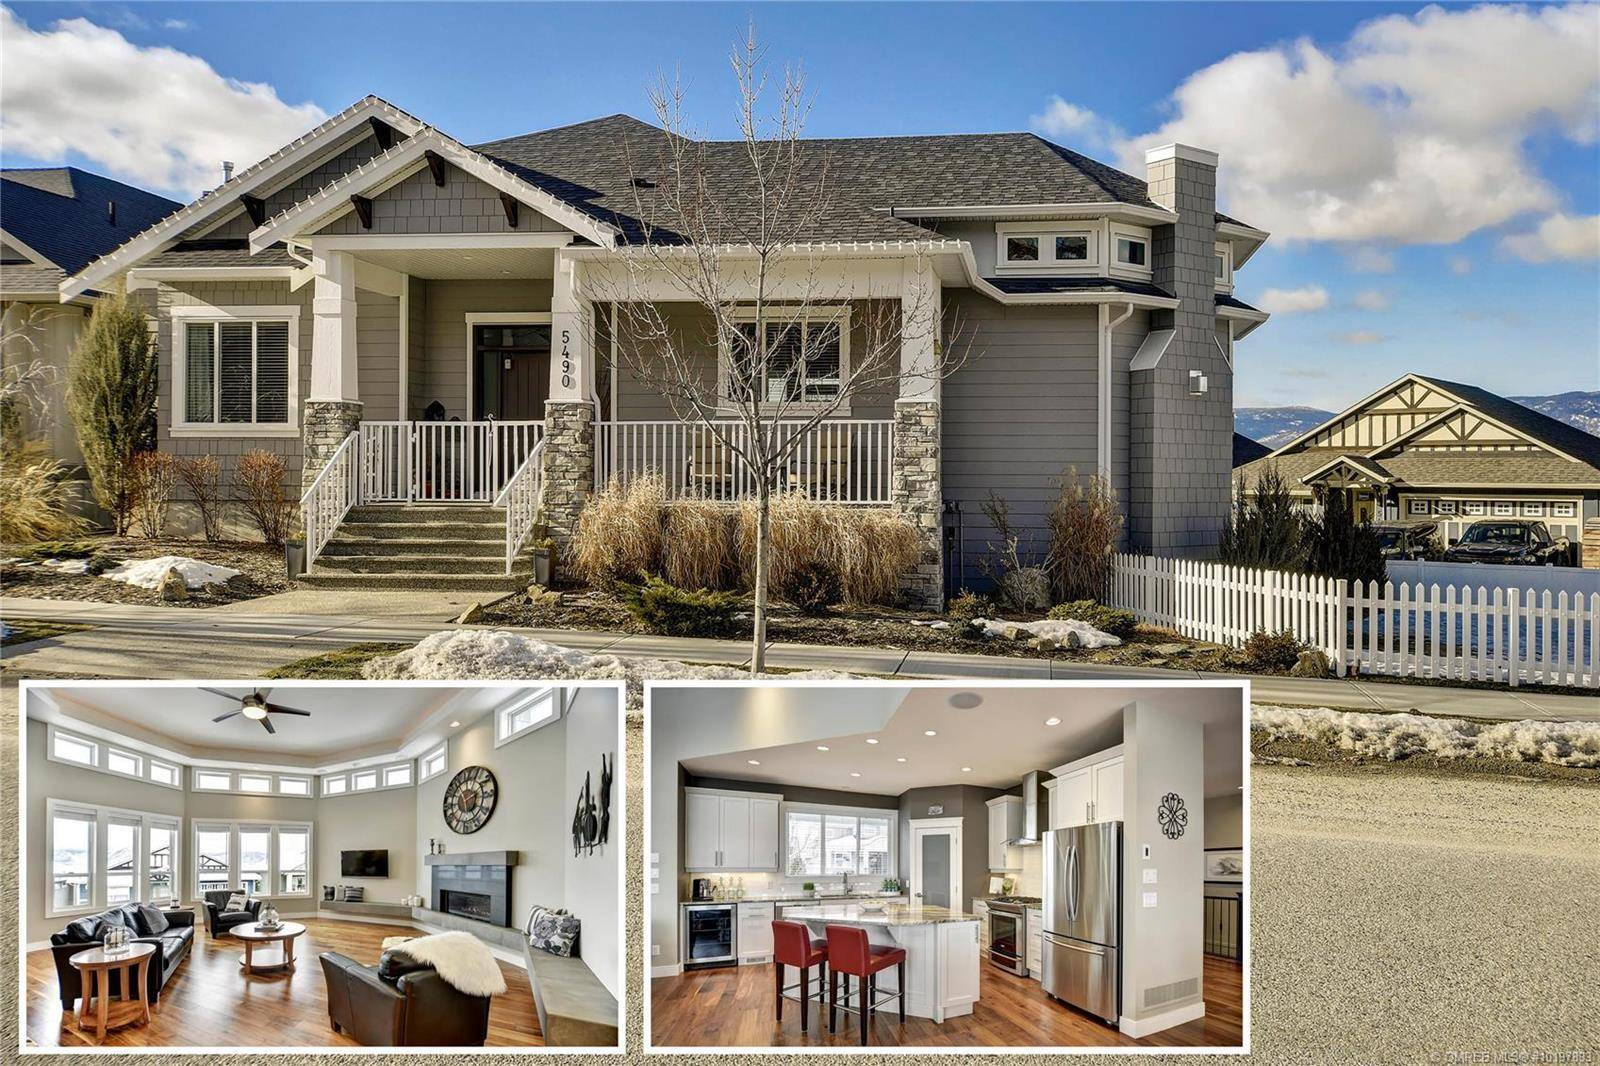 House for sale at 5490 Mountainside Dr Kelowna British Columbia - MLS: 10197893